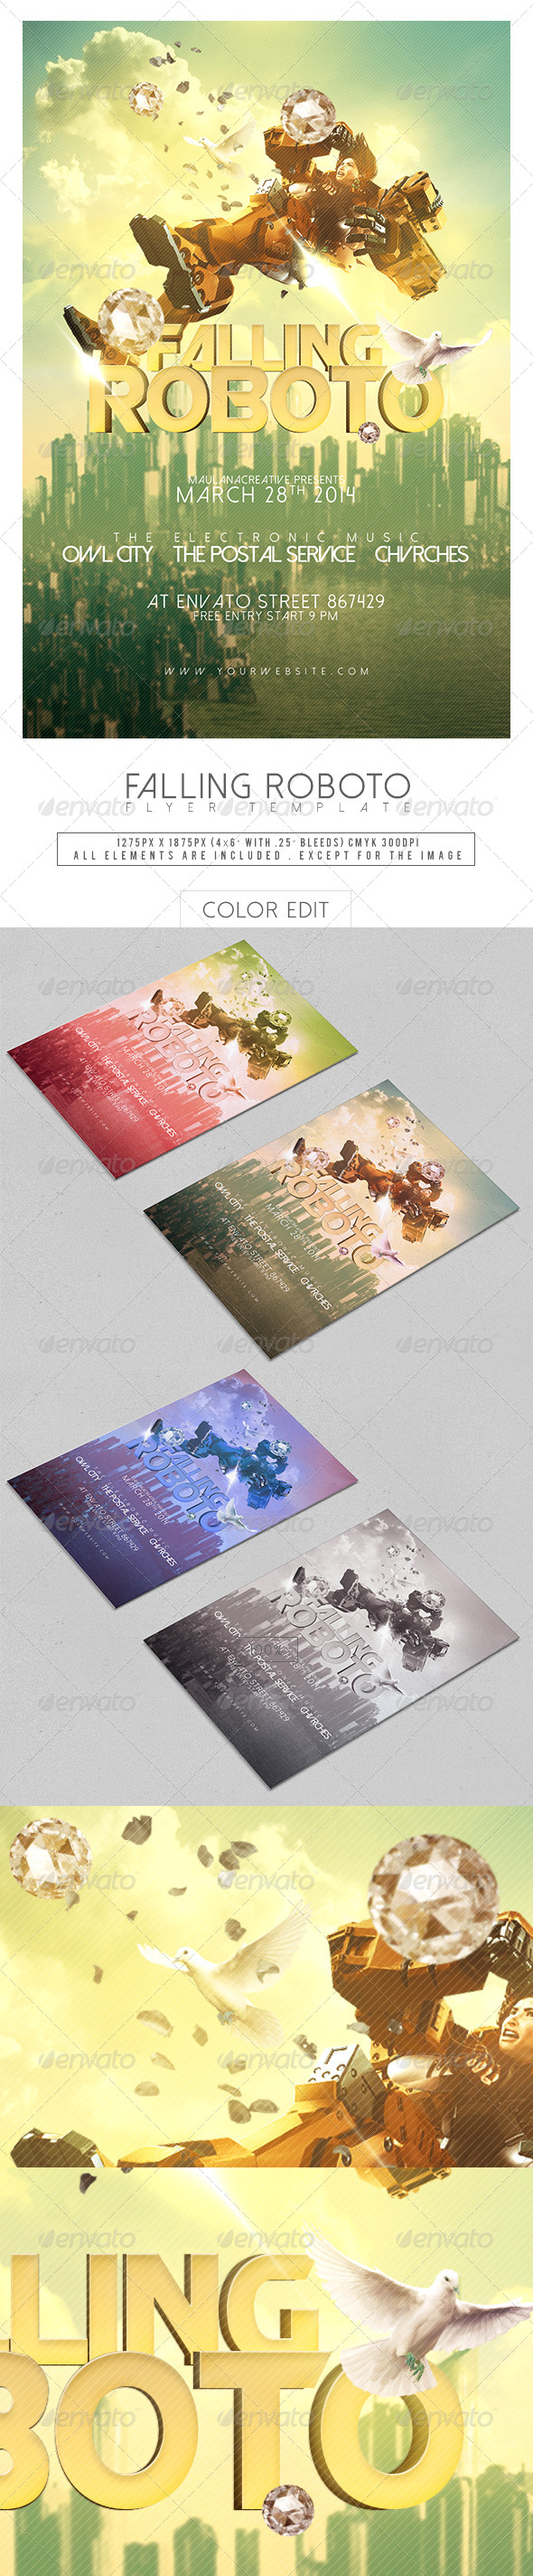 GraphicRiver Falling Roboto Flyer Template 7284325